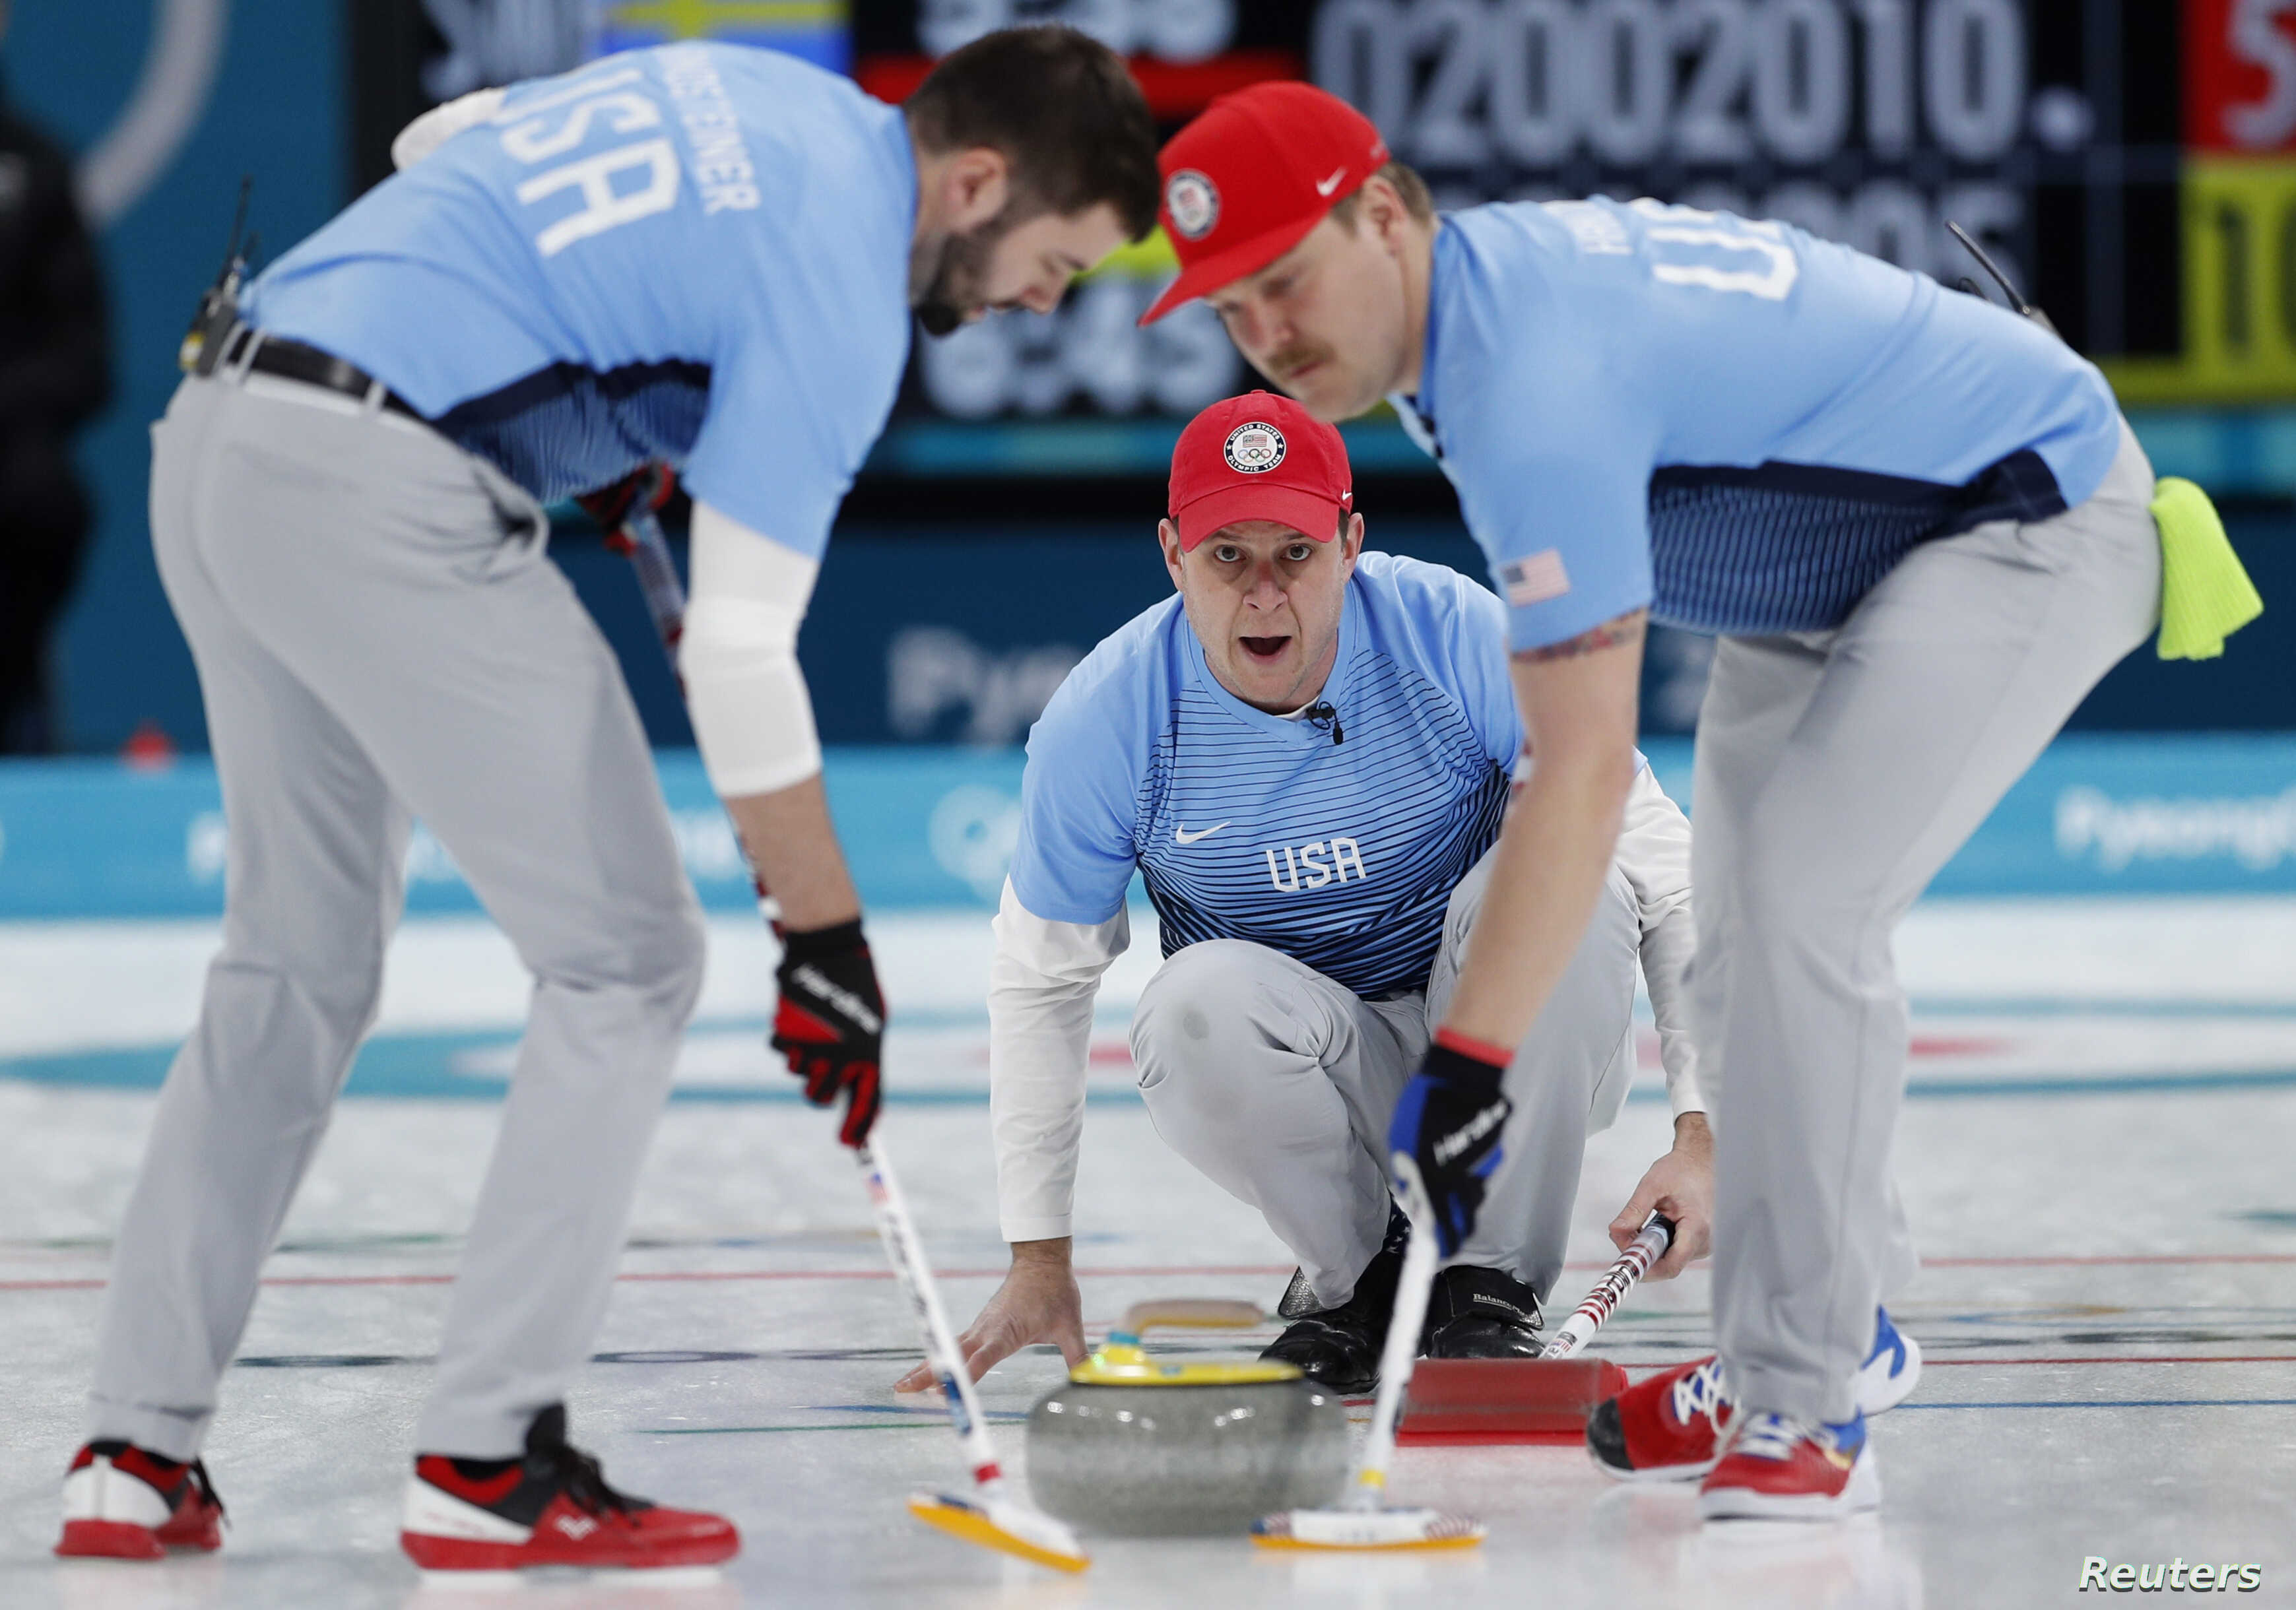 US Men Win First Olympic Gold Medal in Curling | Voice of America